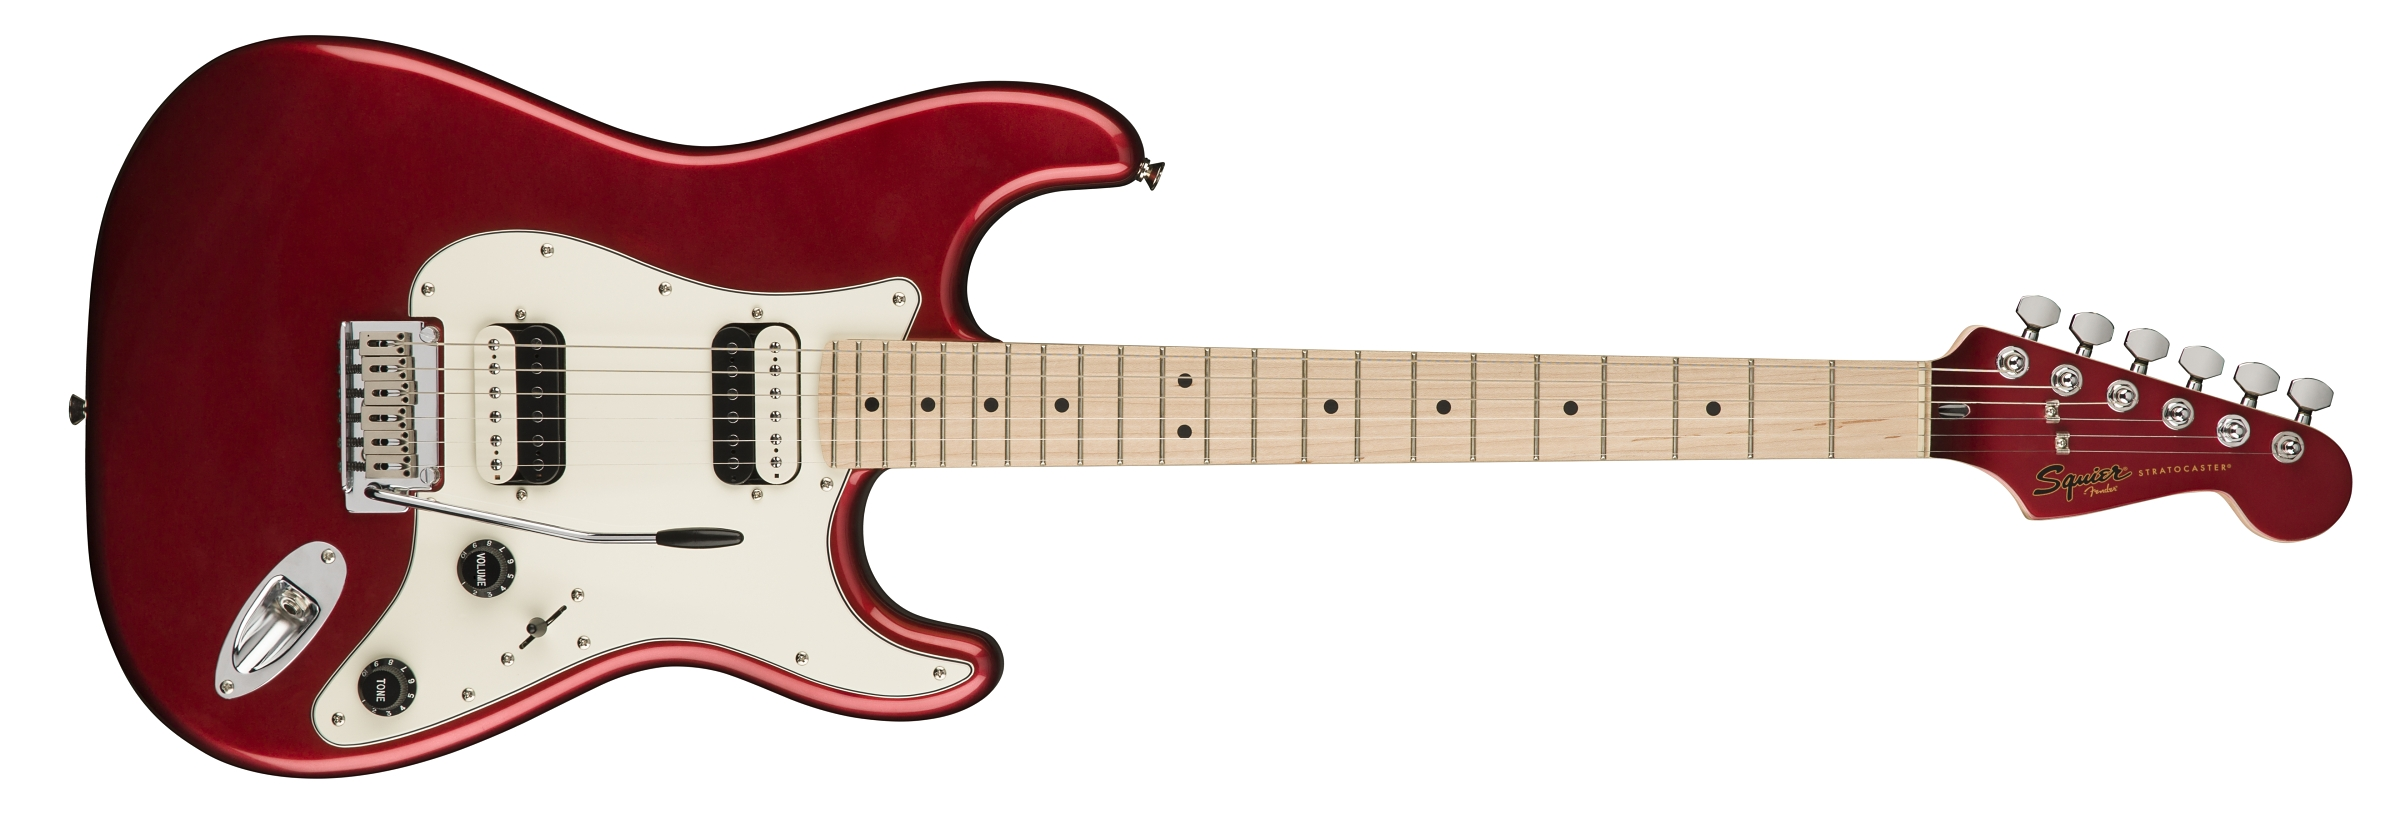 Cool How To Wire Ssr Tall Excalibur Remote Start Installation Shaped 5 Way Rotary Switch Wiring Diagram 3 Coil Pickup Young How To Wire Guitar Pickups BrightGibson 3 Way Switch Squier Contemporary Stratocaster® HH, Maple Fingerboard, Dark ..